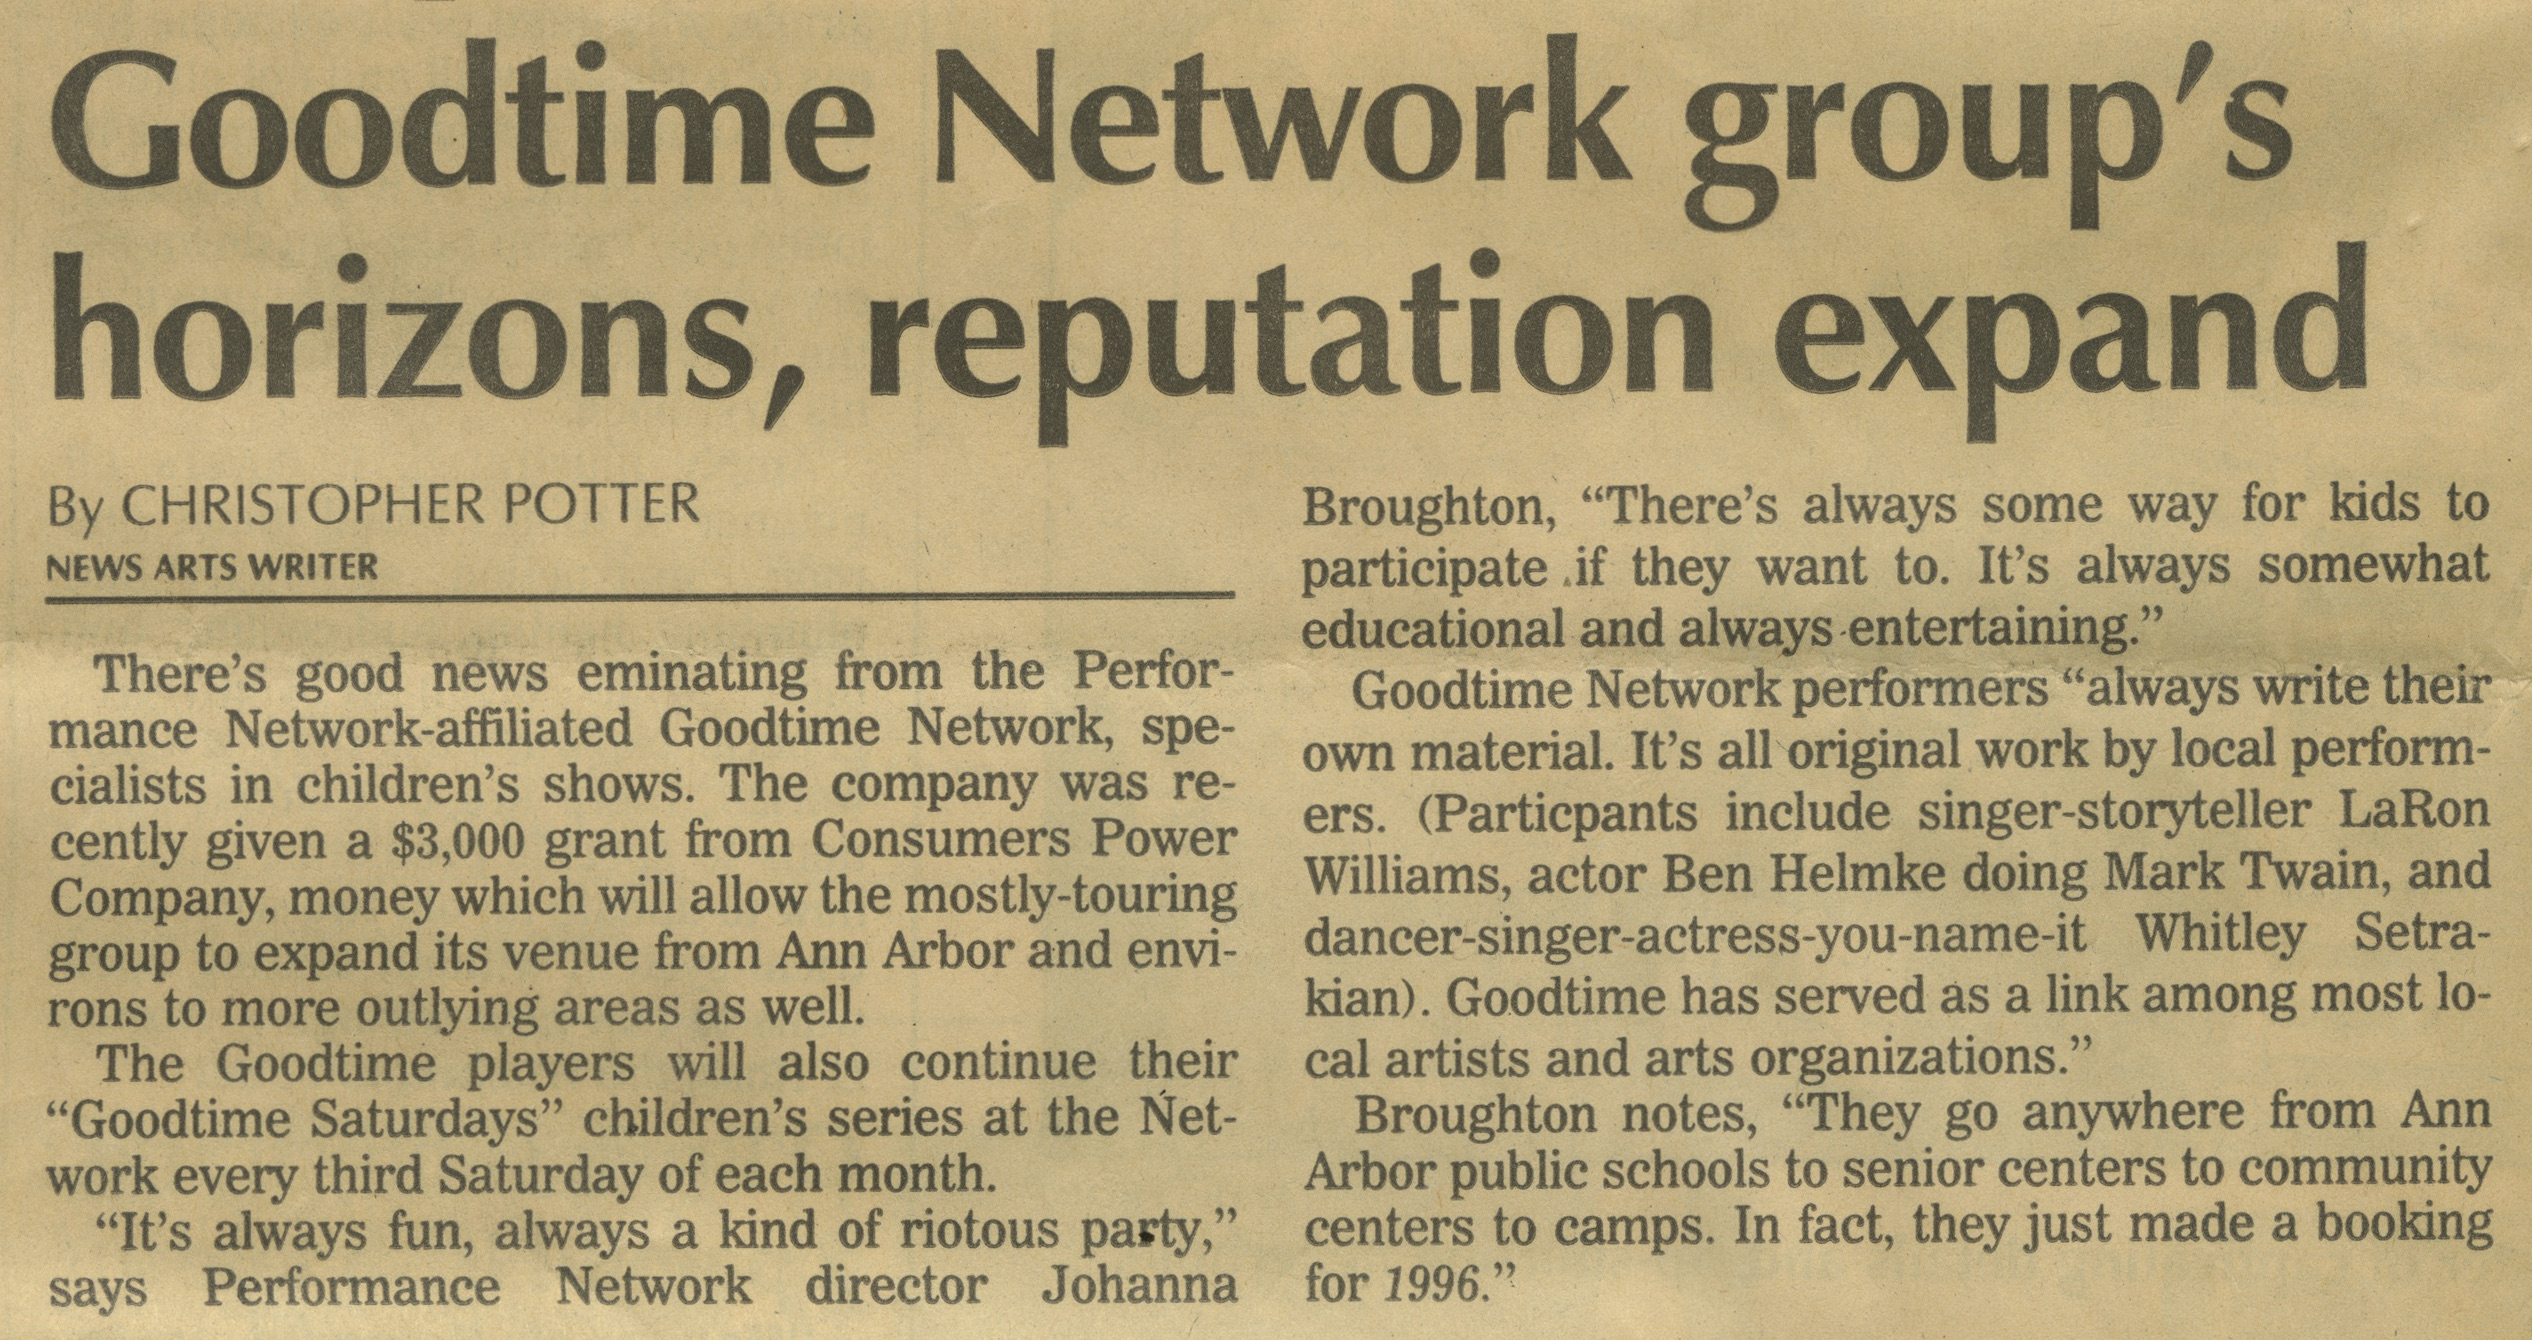 Goodtime Network group's horizons, reputation expand image